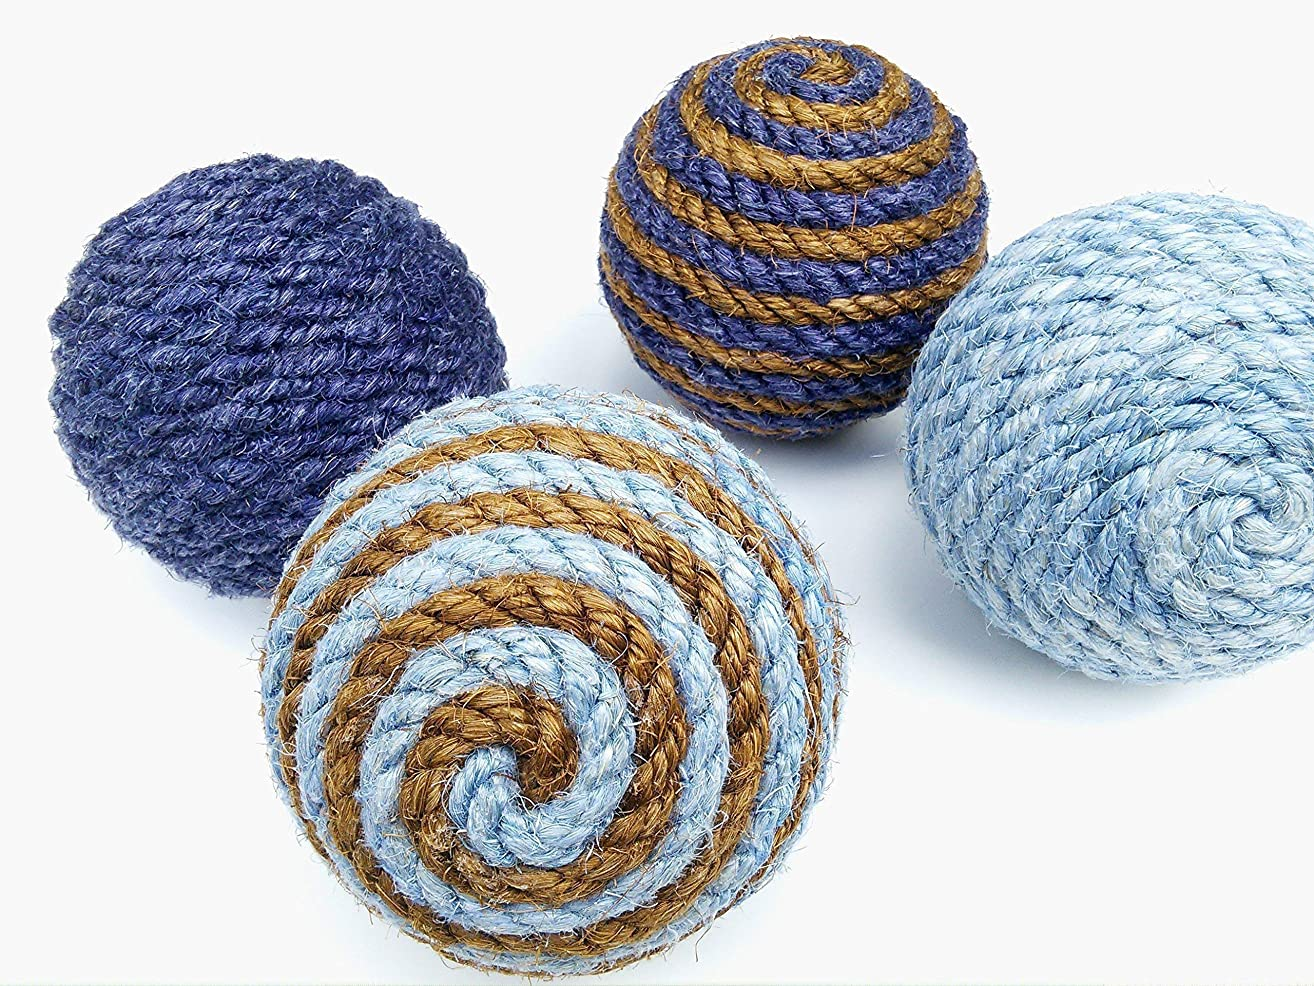 Medium Sisal Rope Decorative Ball, Natural or Dyed Sisal, Nautical Home Decor